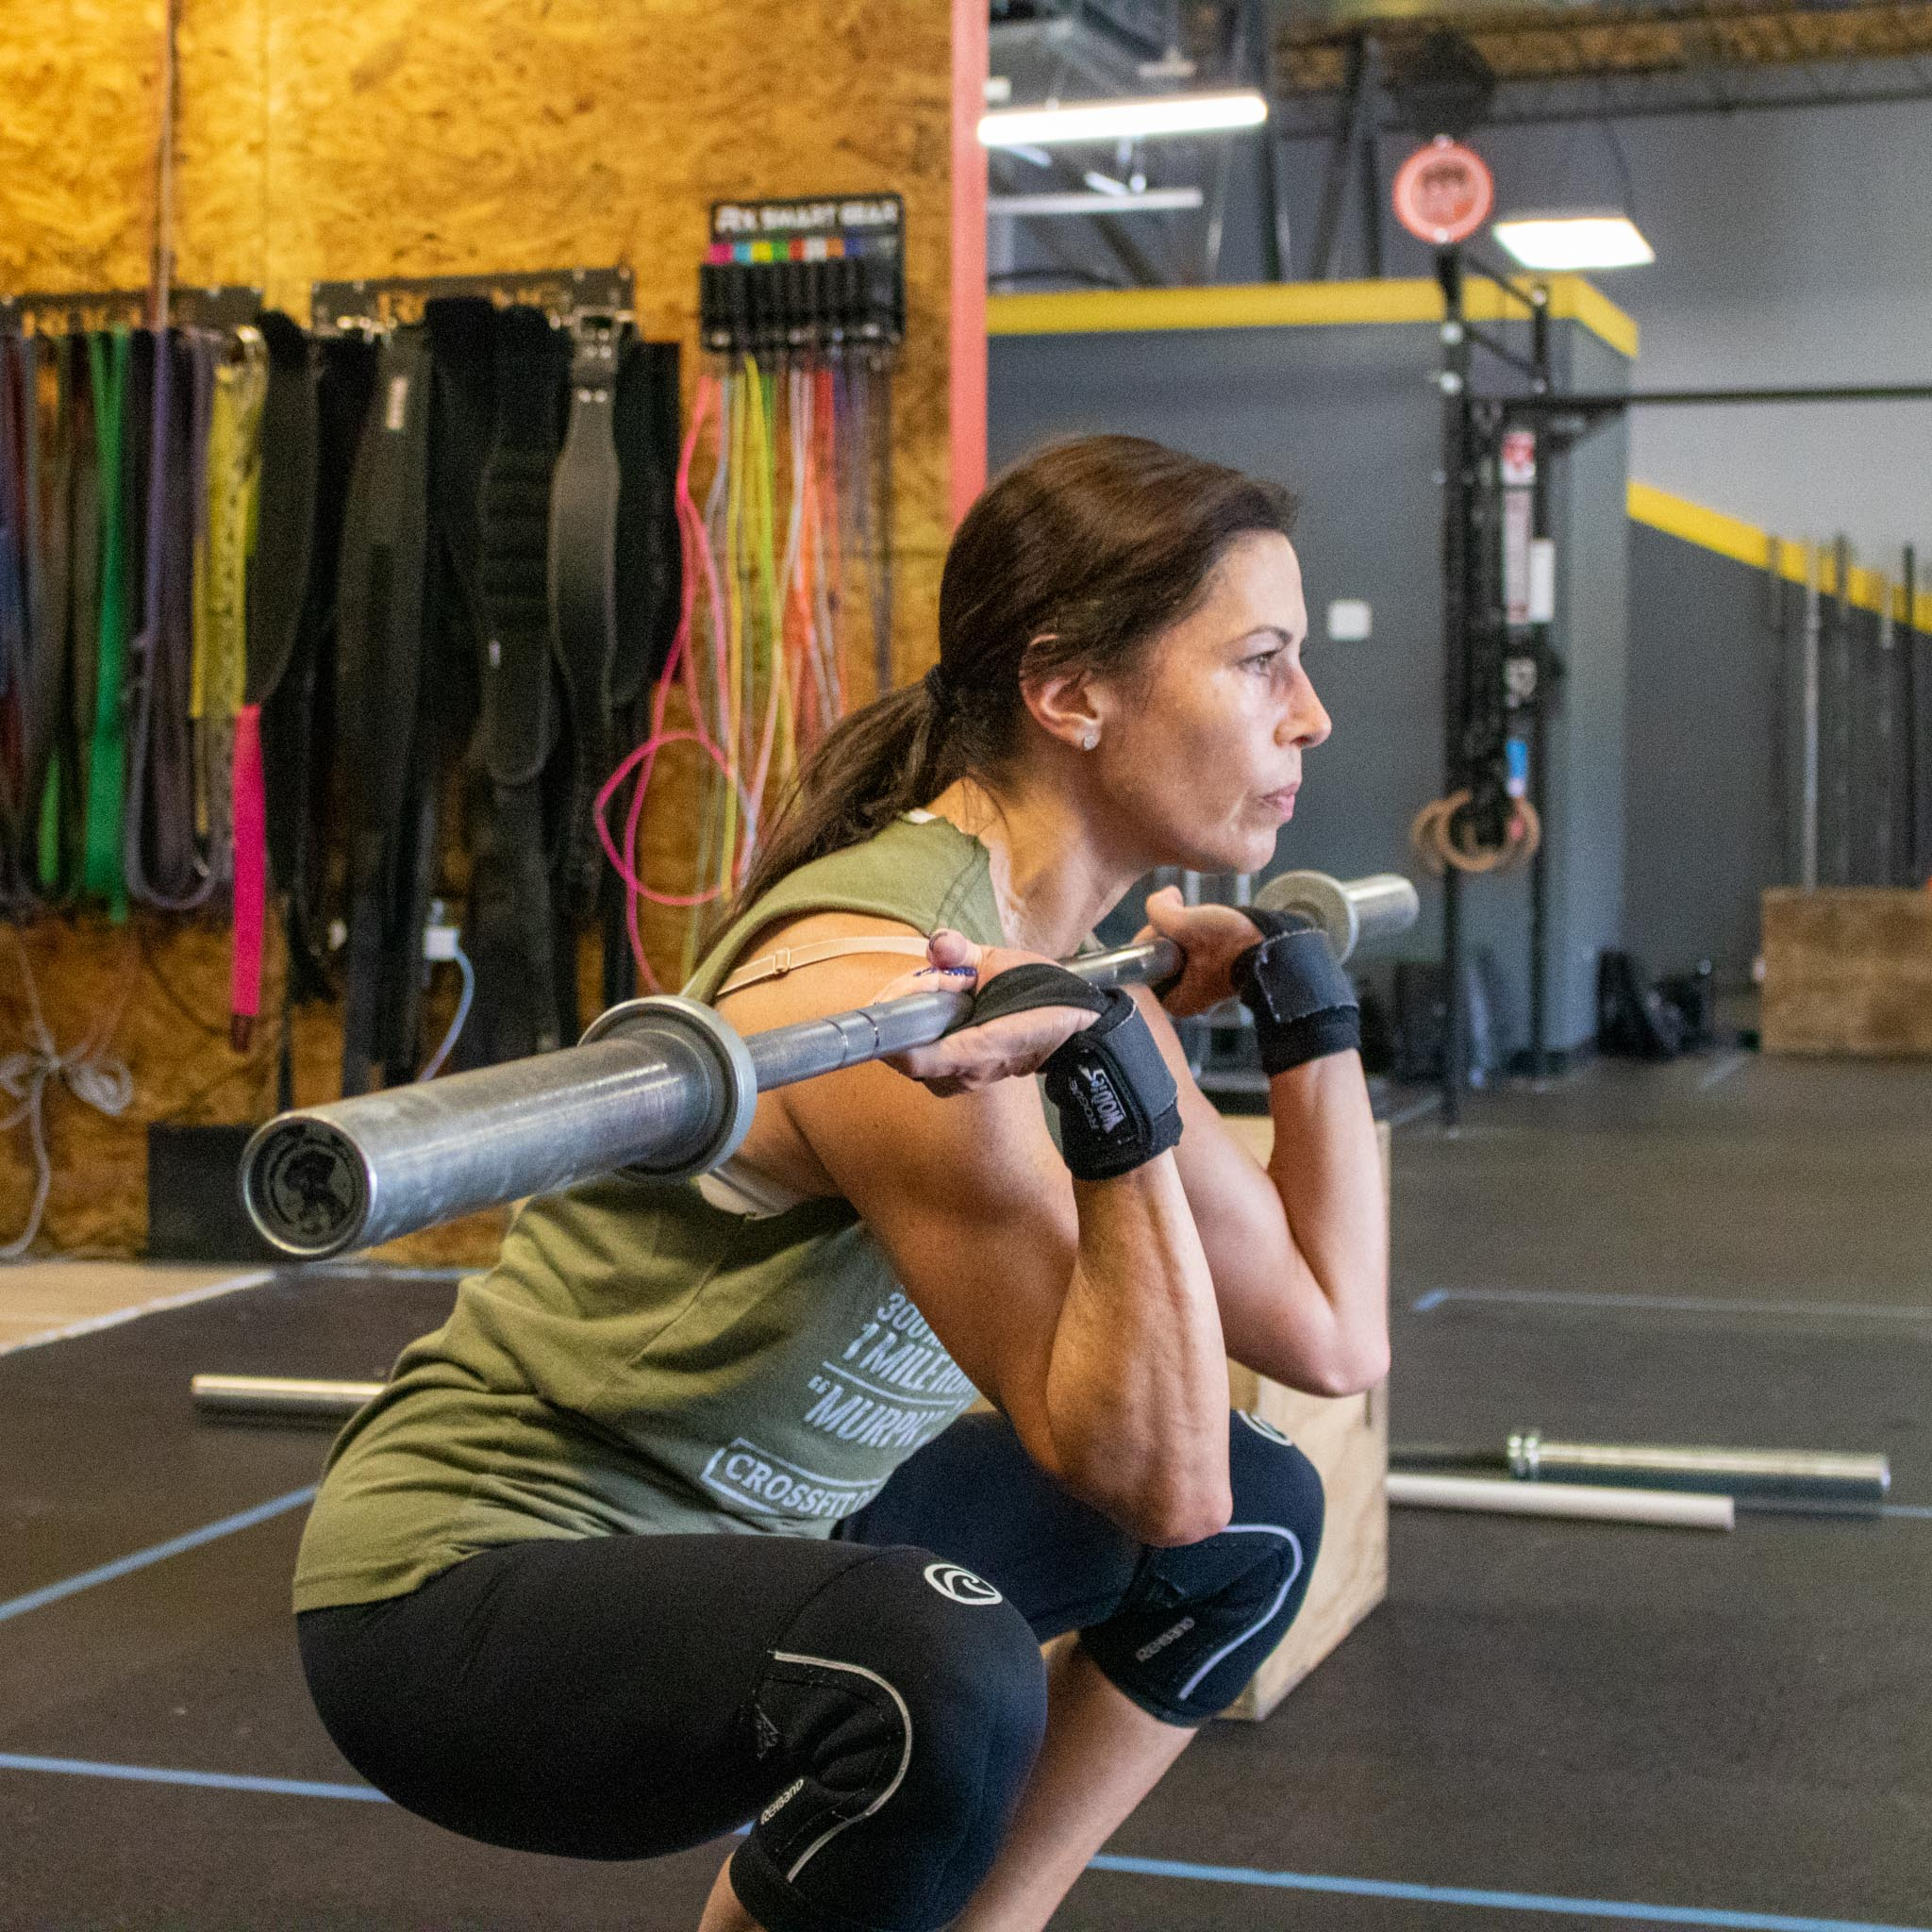 Scaling your workout